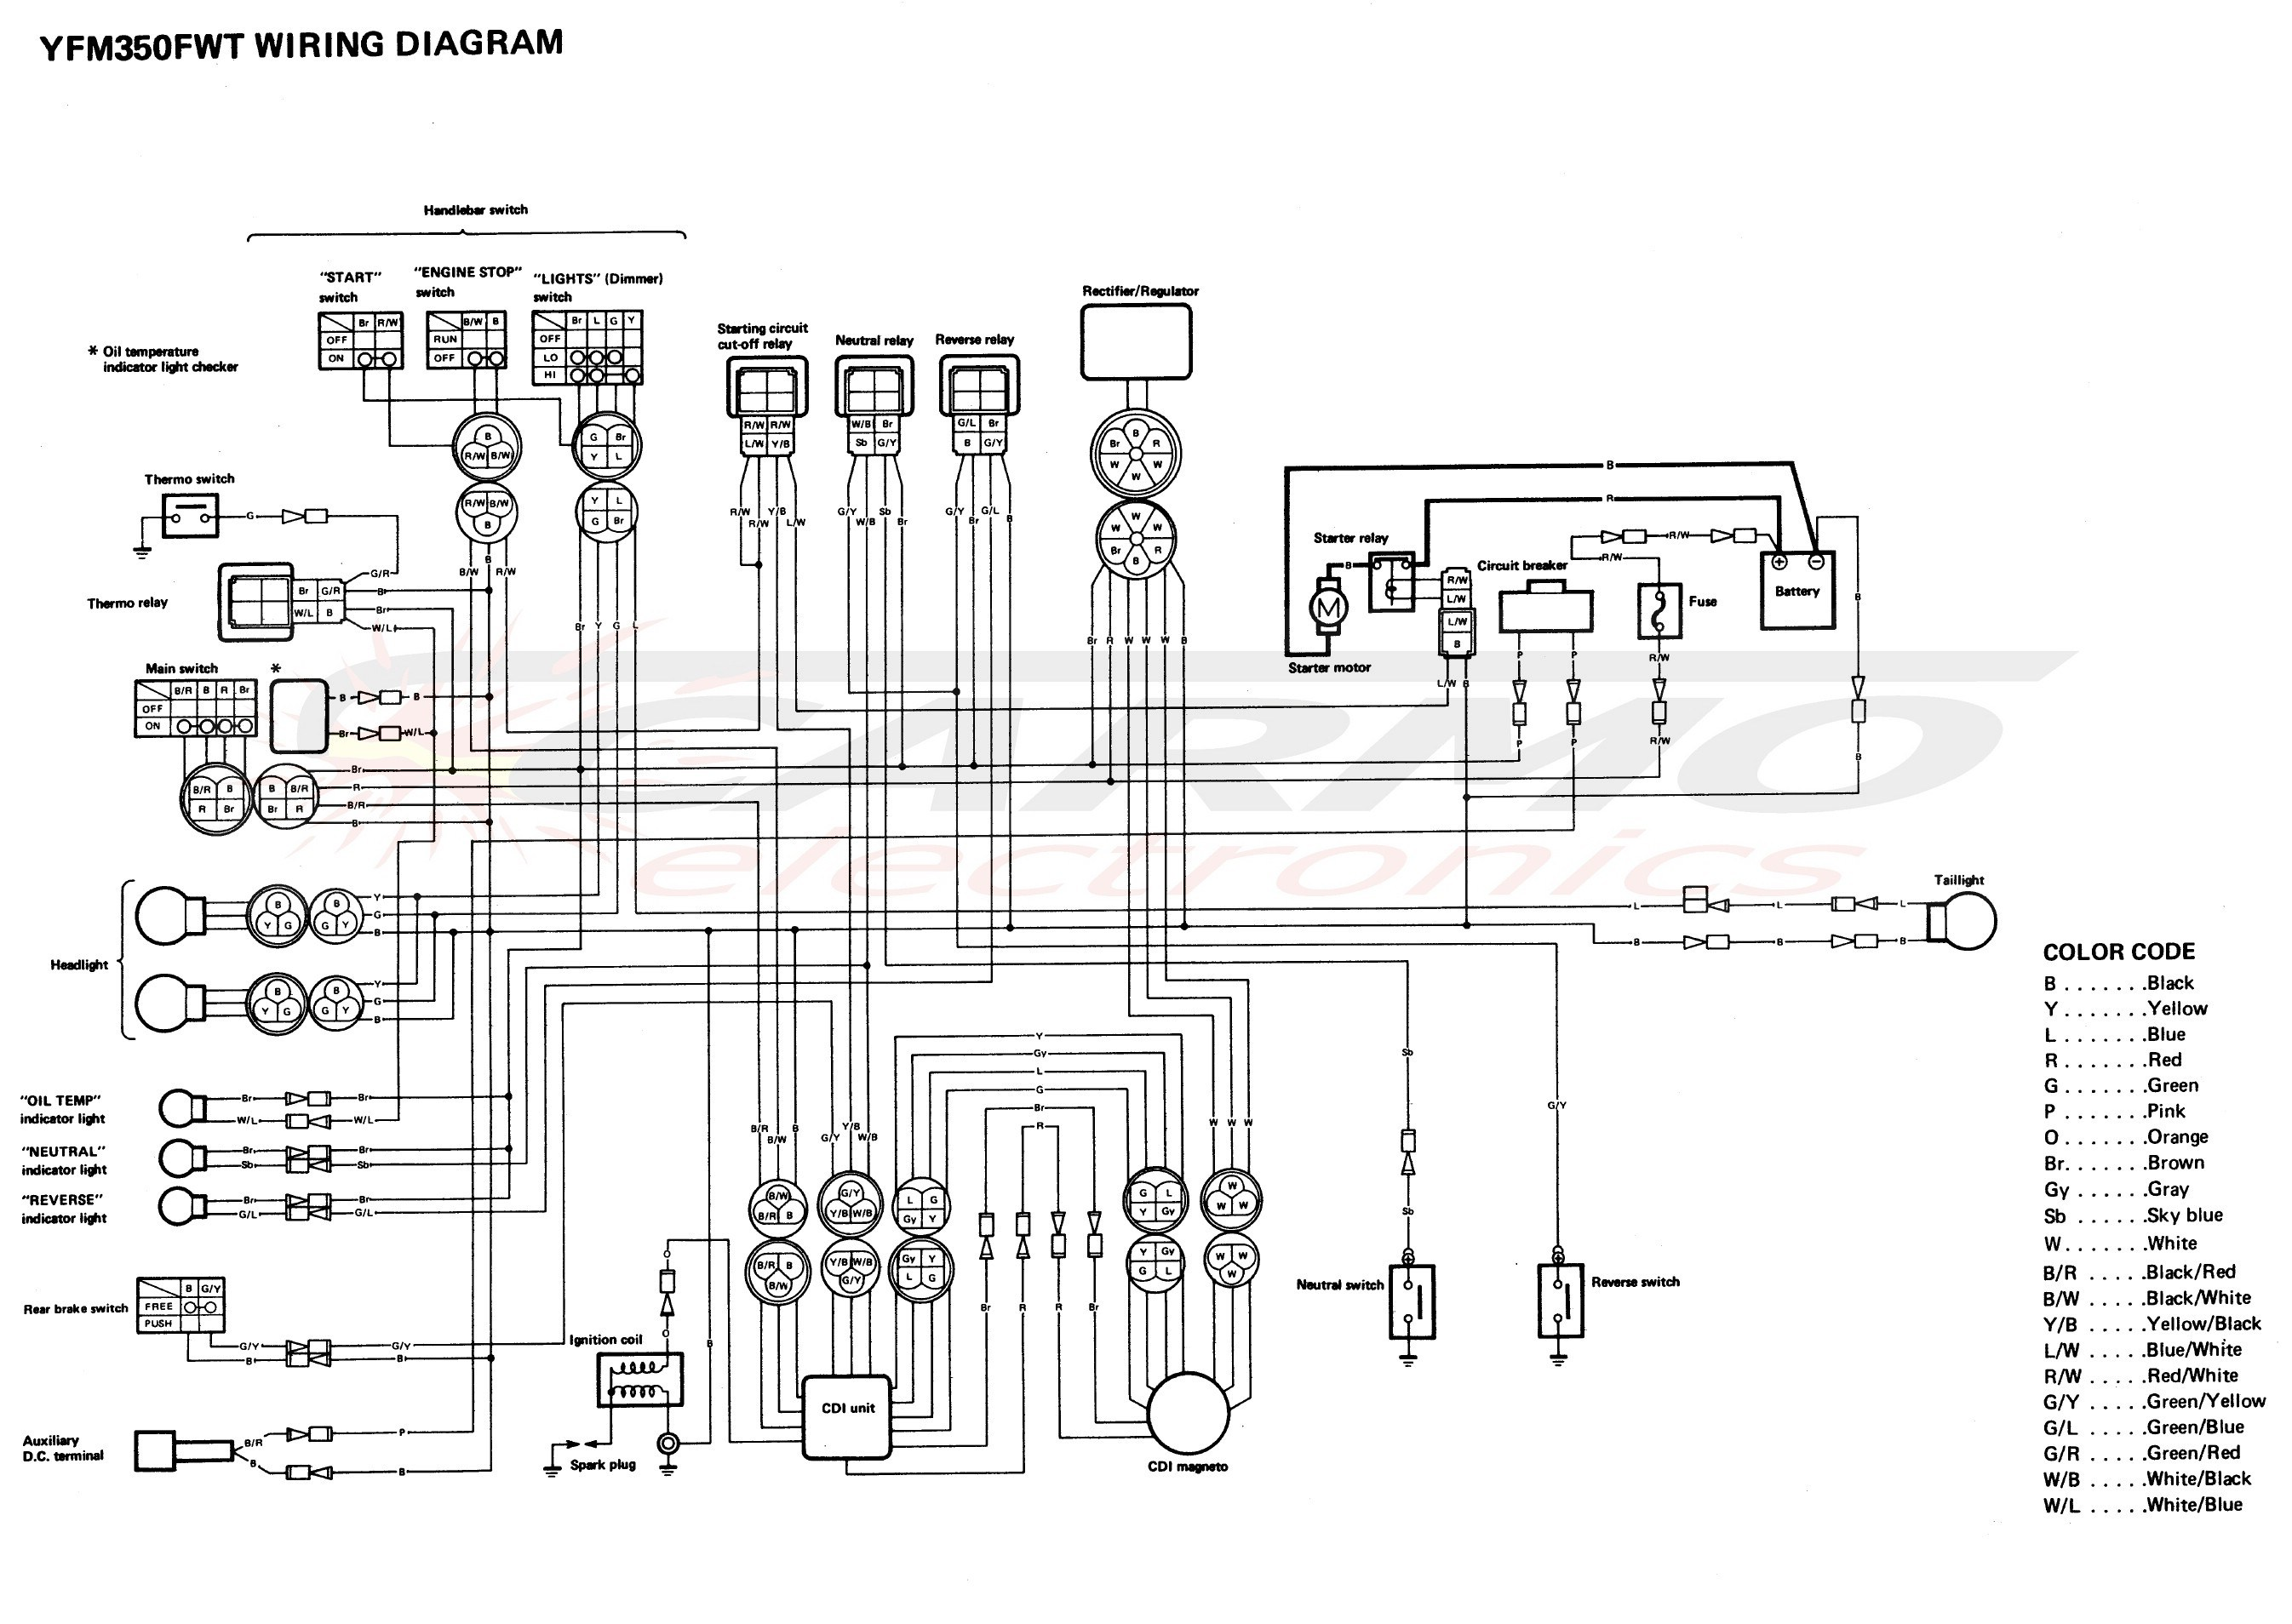 cy50 a wiring diagram og 6510  dc cdi wiring diagram also wildfire 50cc scooter wiring  dc cdi wiring diagram also wildfire